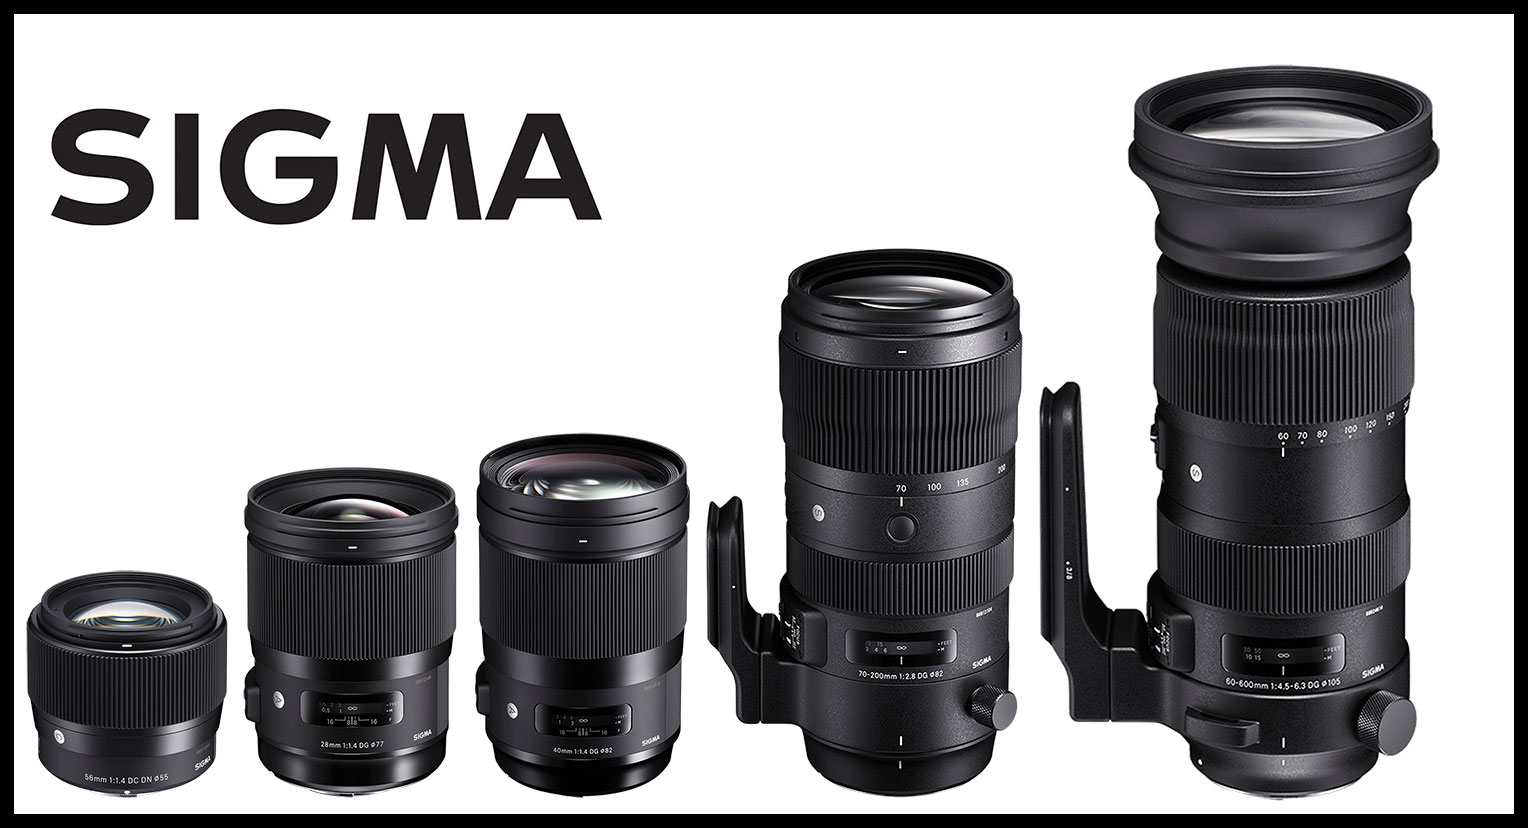 Sigma New Lenses Price in Pakistan